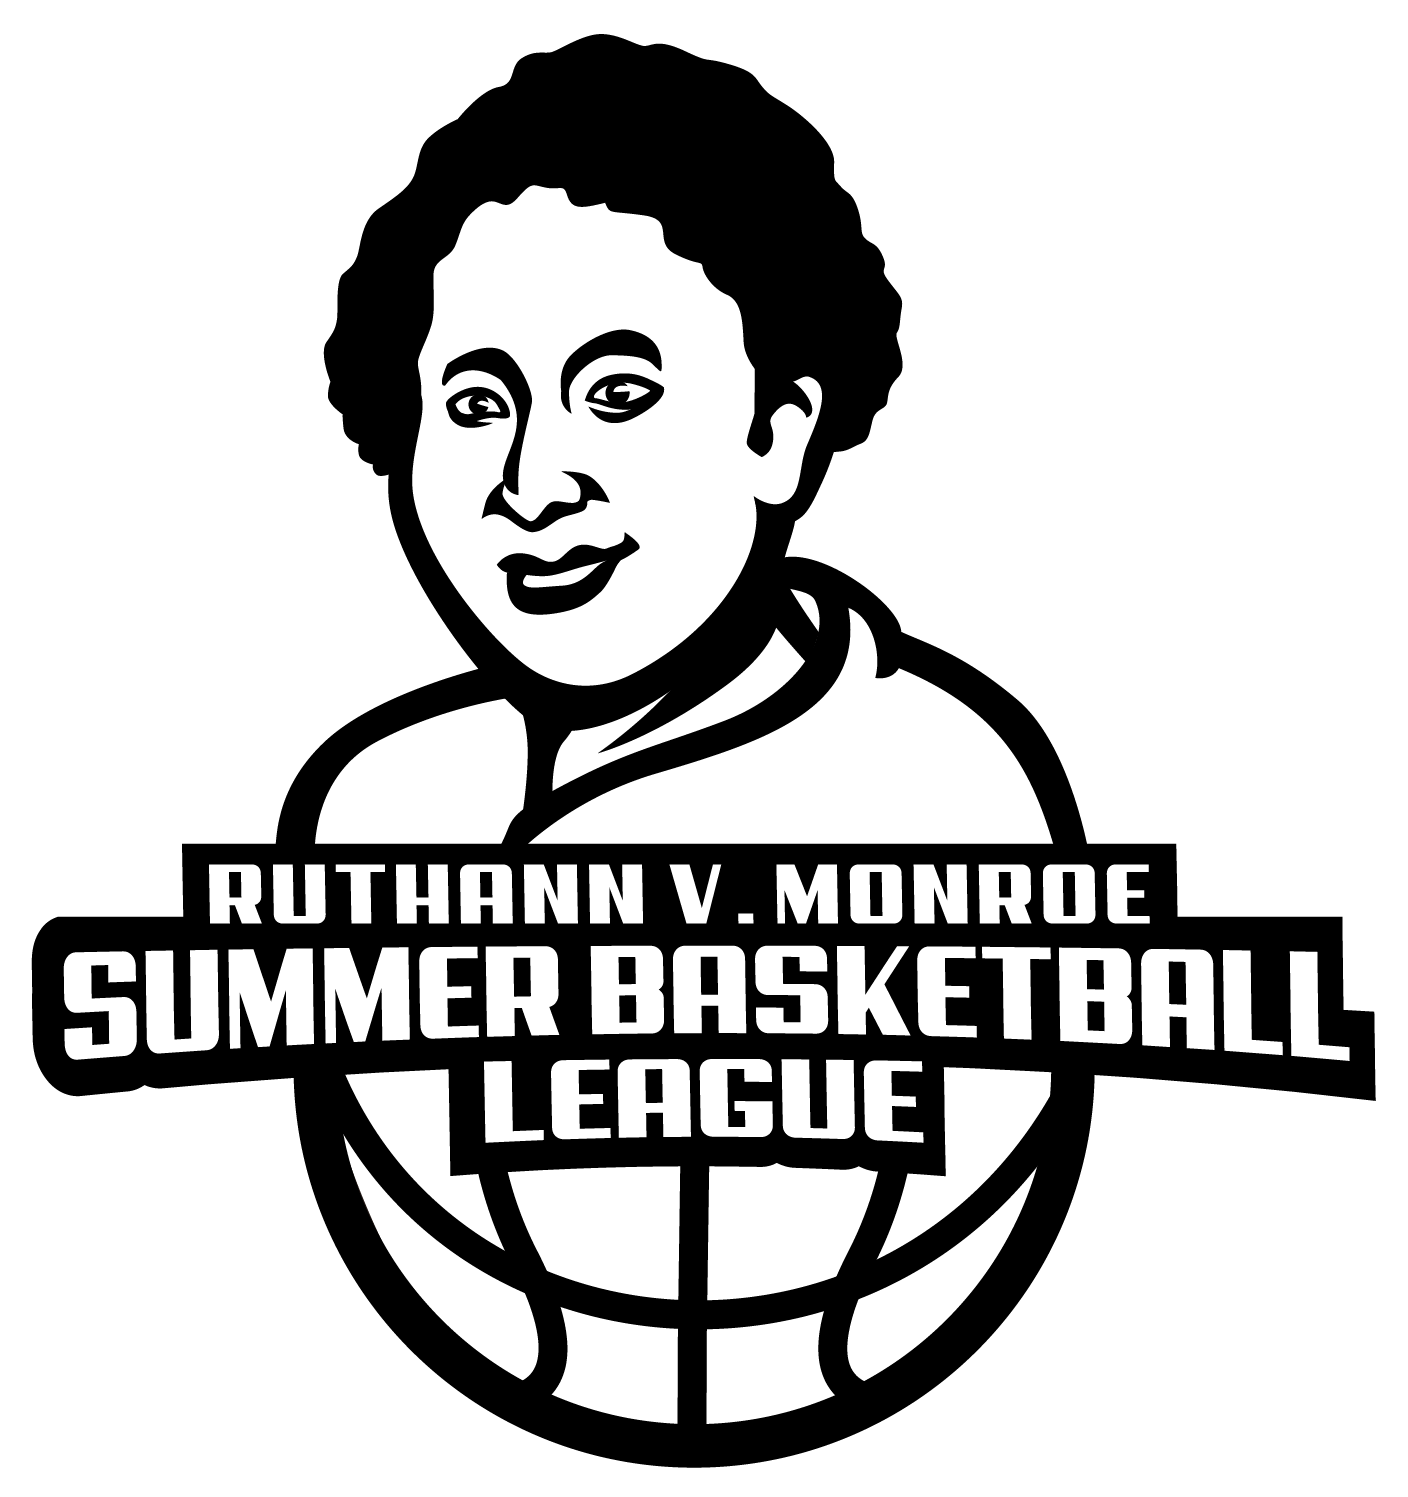 Ruthann V. Monroe Summer Basketball League